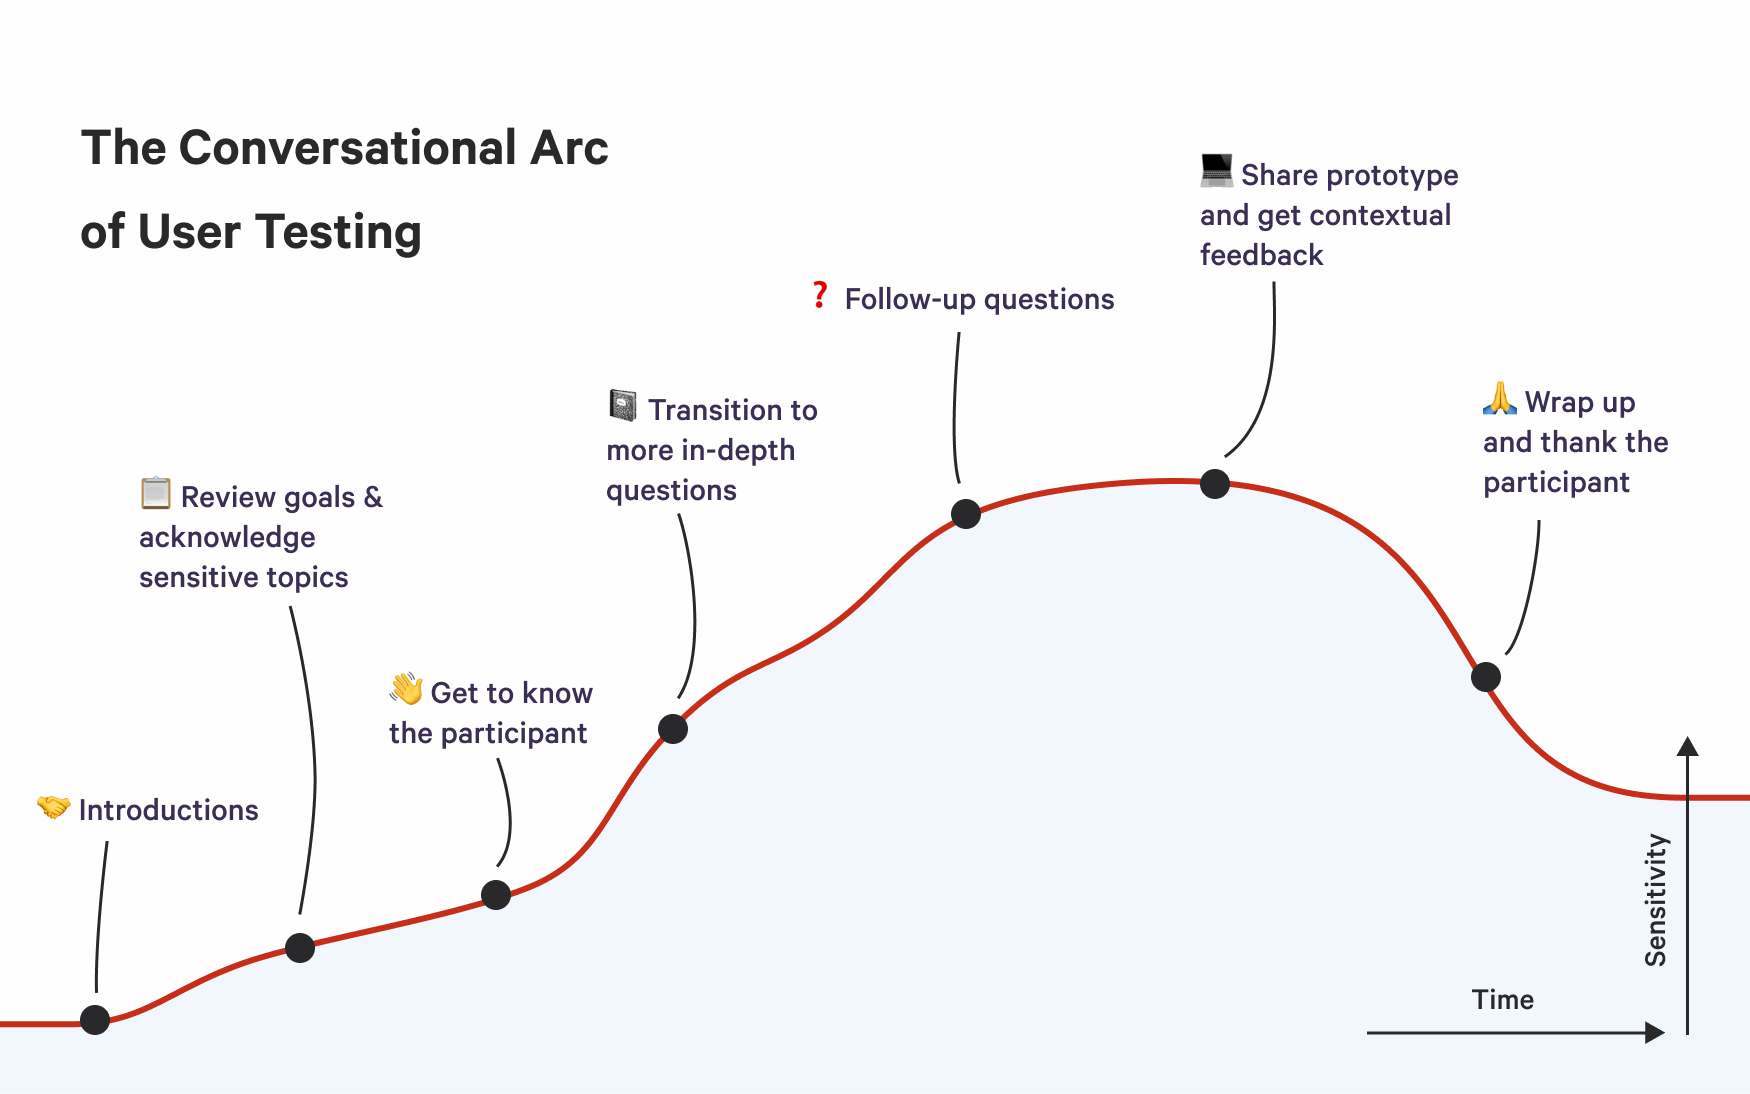 Conversational Arc of User Testing